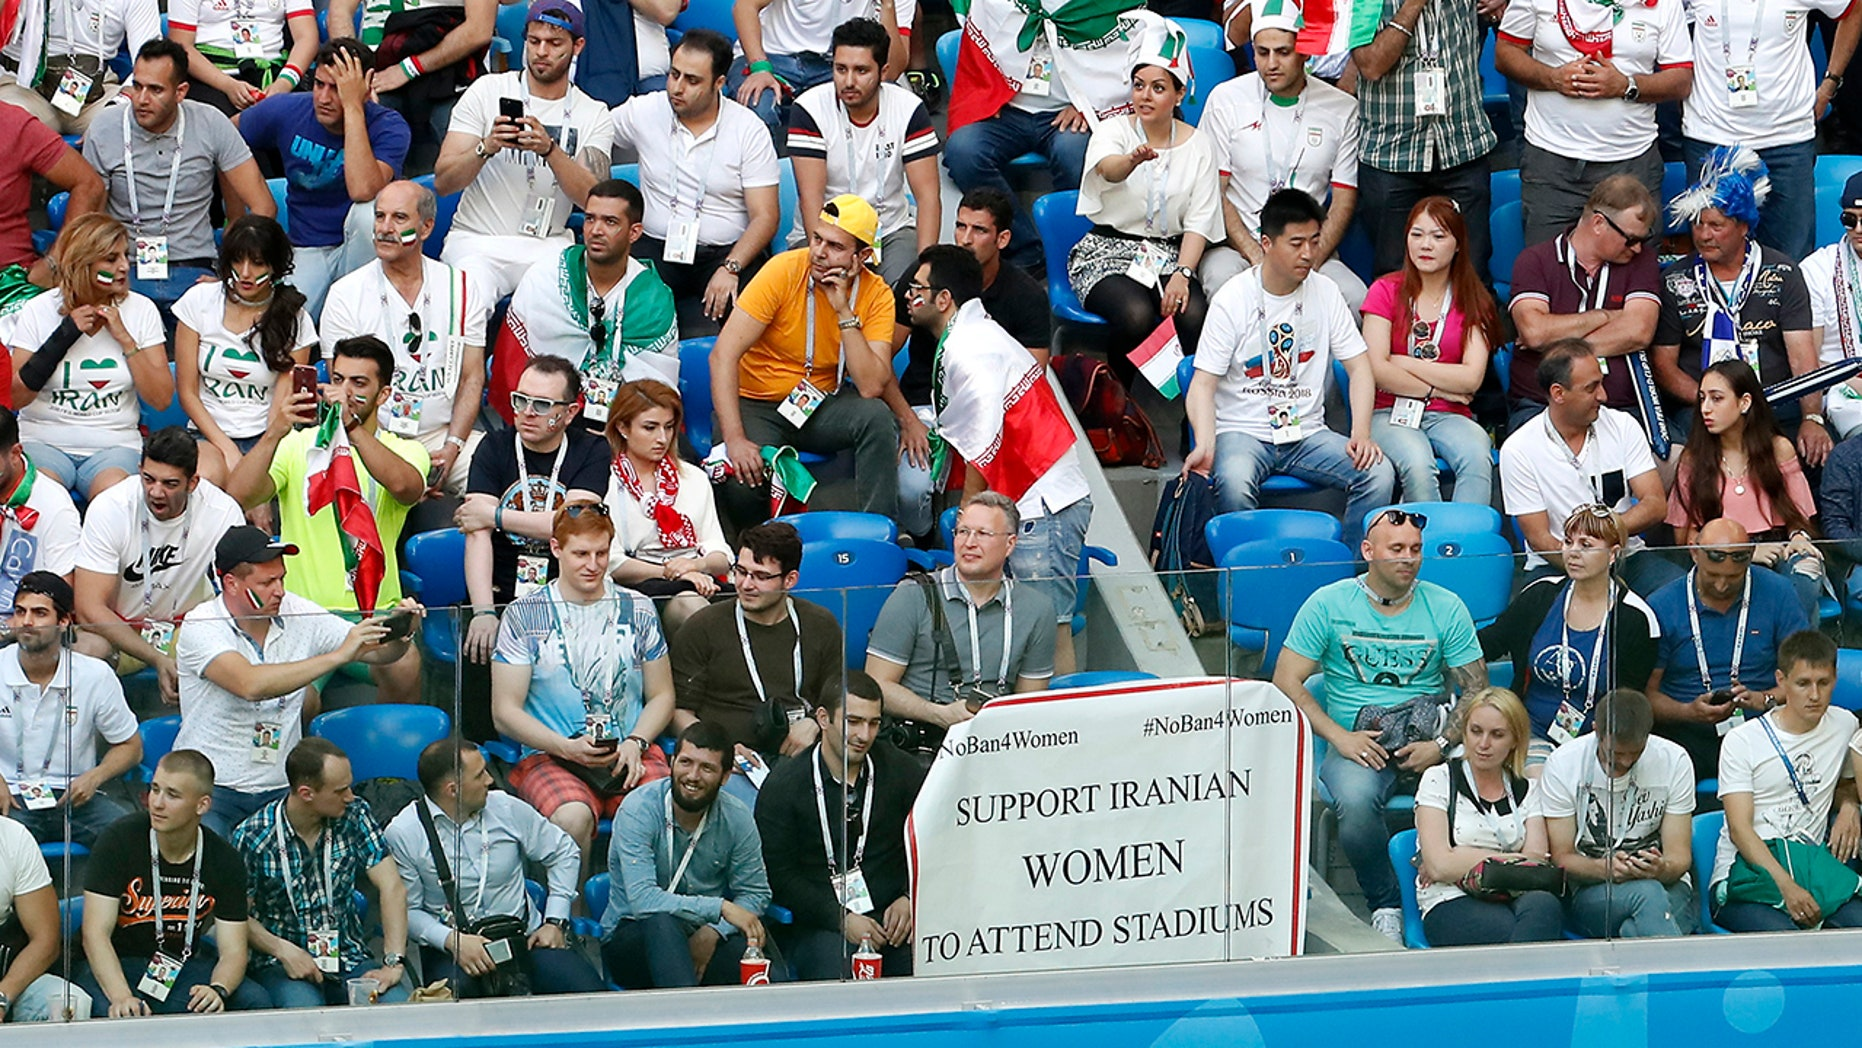 A poster to support Iranian women is displayed in the stands during the group B match between Morocco and Iran at the 2018 soccer World Cup in the St. Petersburg Stadium in St. Petersburg, Russia.